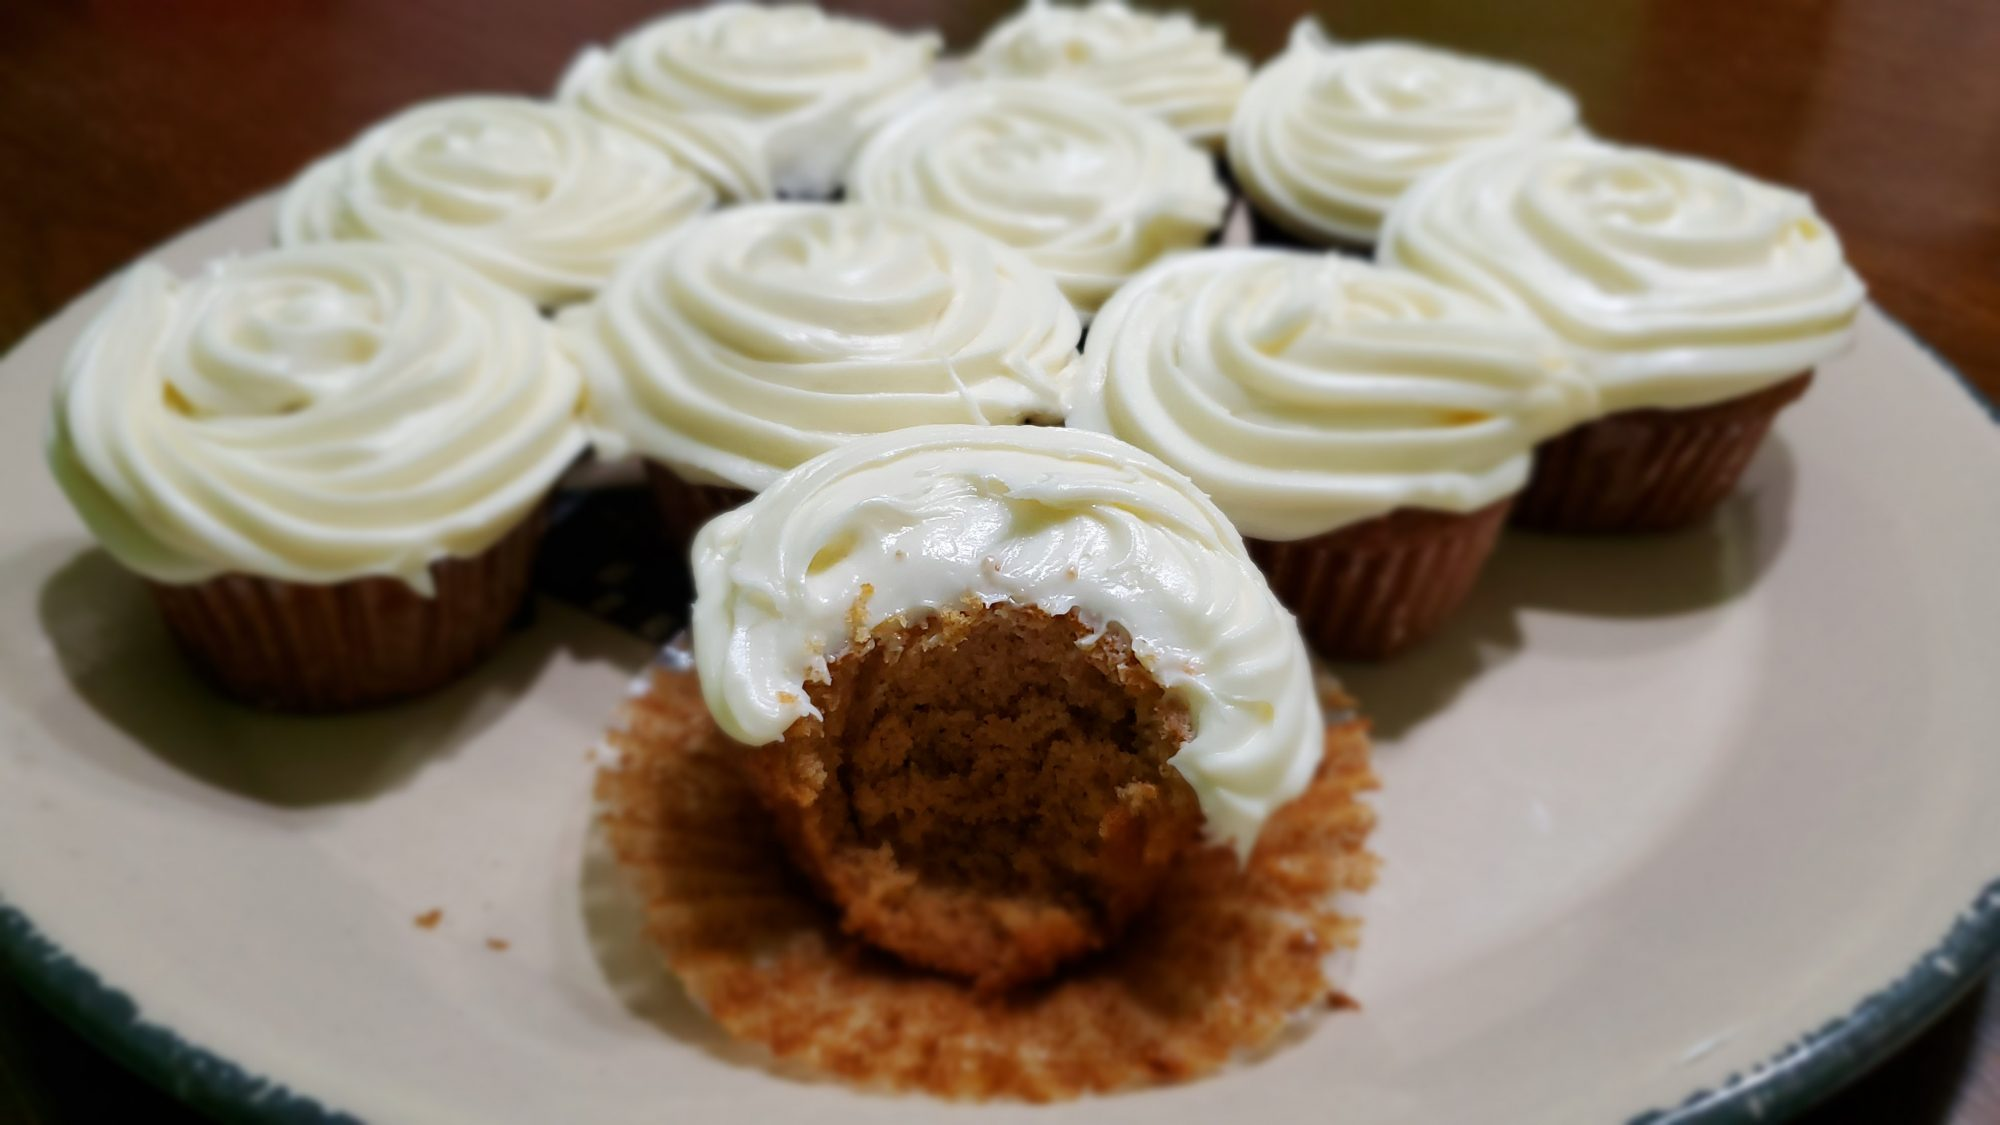 Cupcakes with white icing on white plate